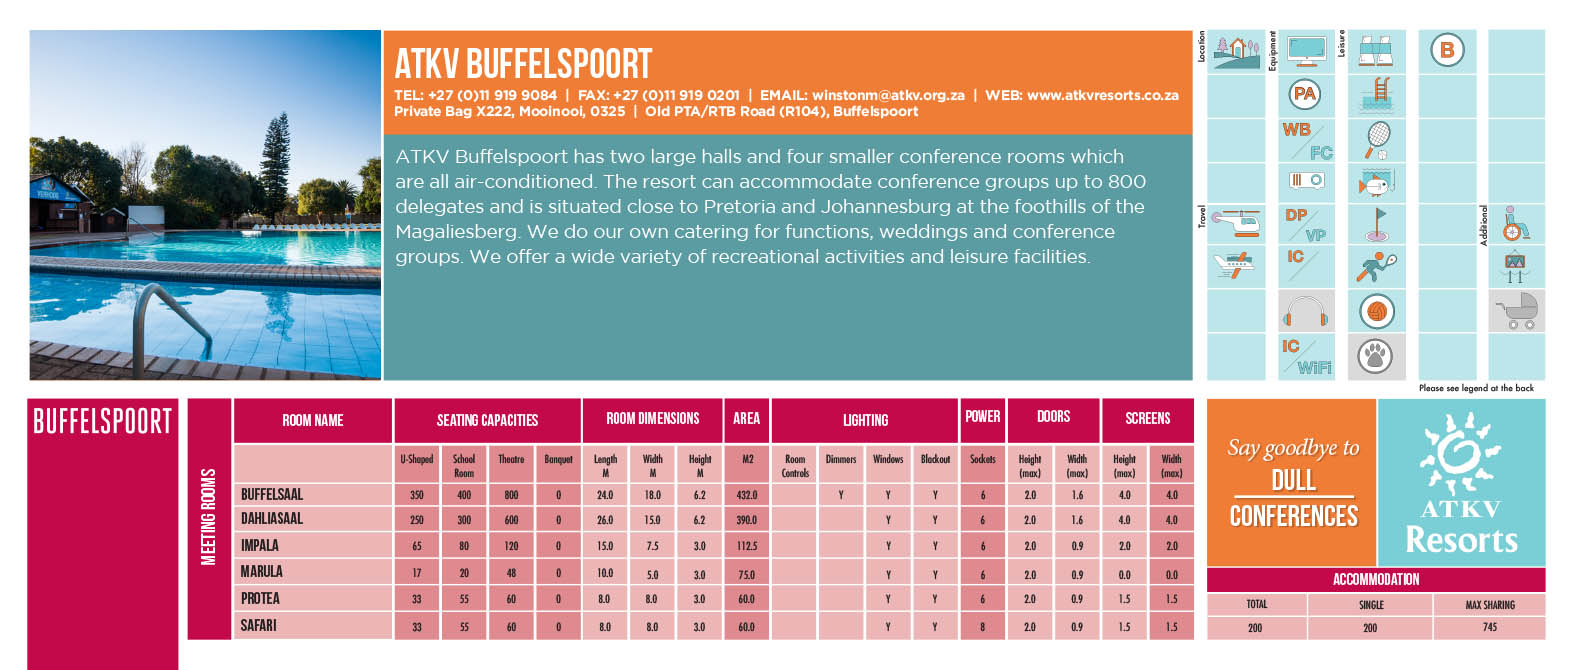 ATKV_Buffelspoort Fact Sheet_B-1.jpg